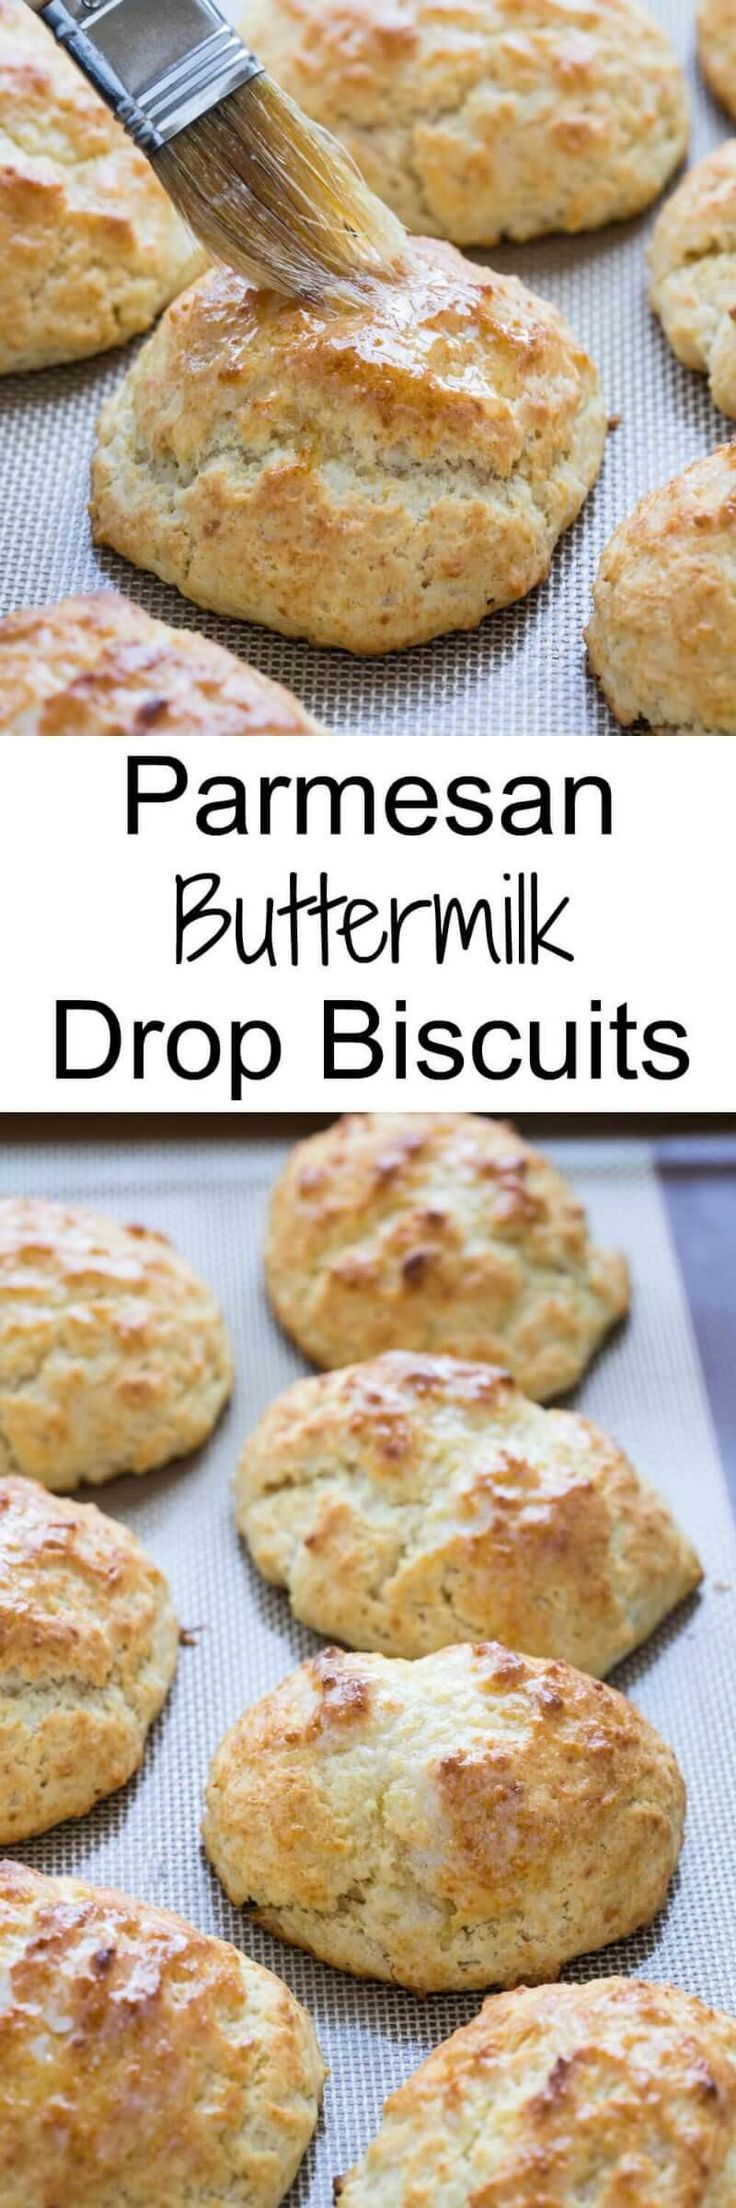 100+ Drop biscuit recipes on Pinterest | Sour cream ...